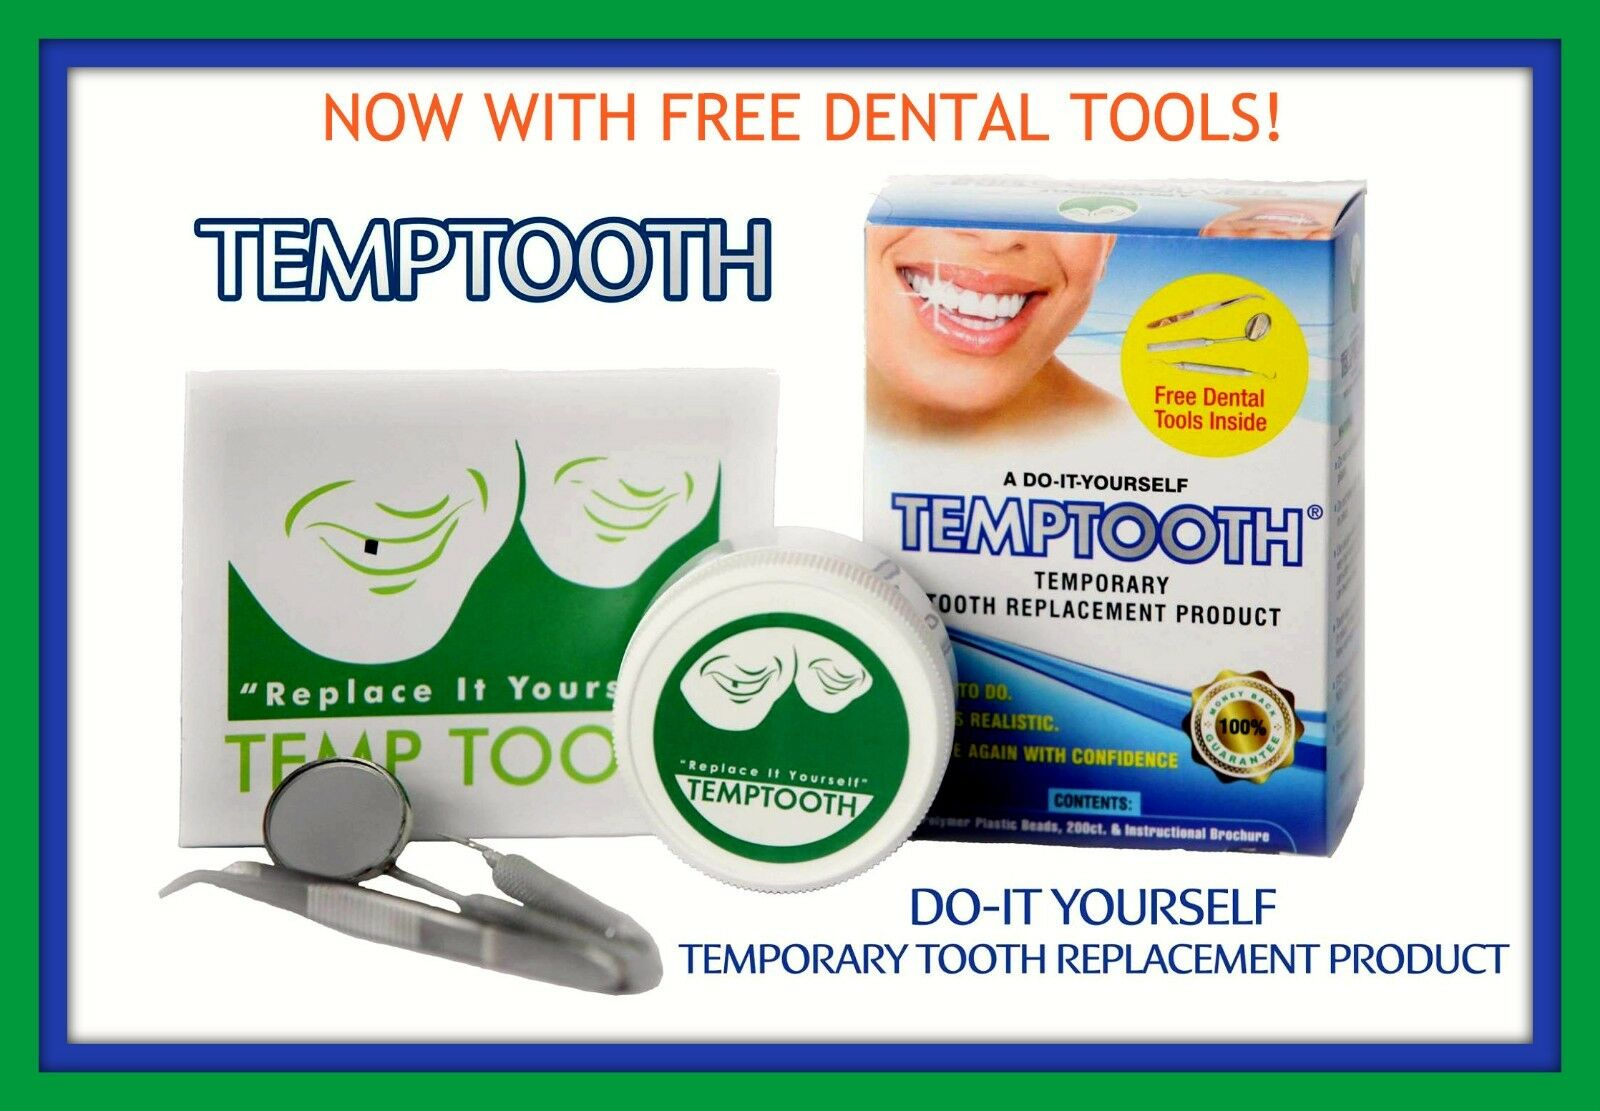 Temptooth do it yourself tooth replacement product oral care you to resntentobalflowflowcomponentncel solutioingenieria Choice Image